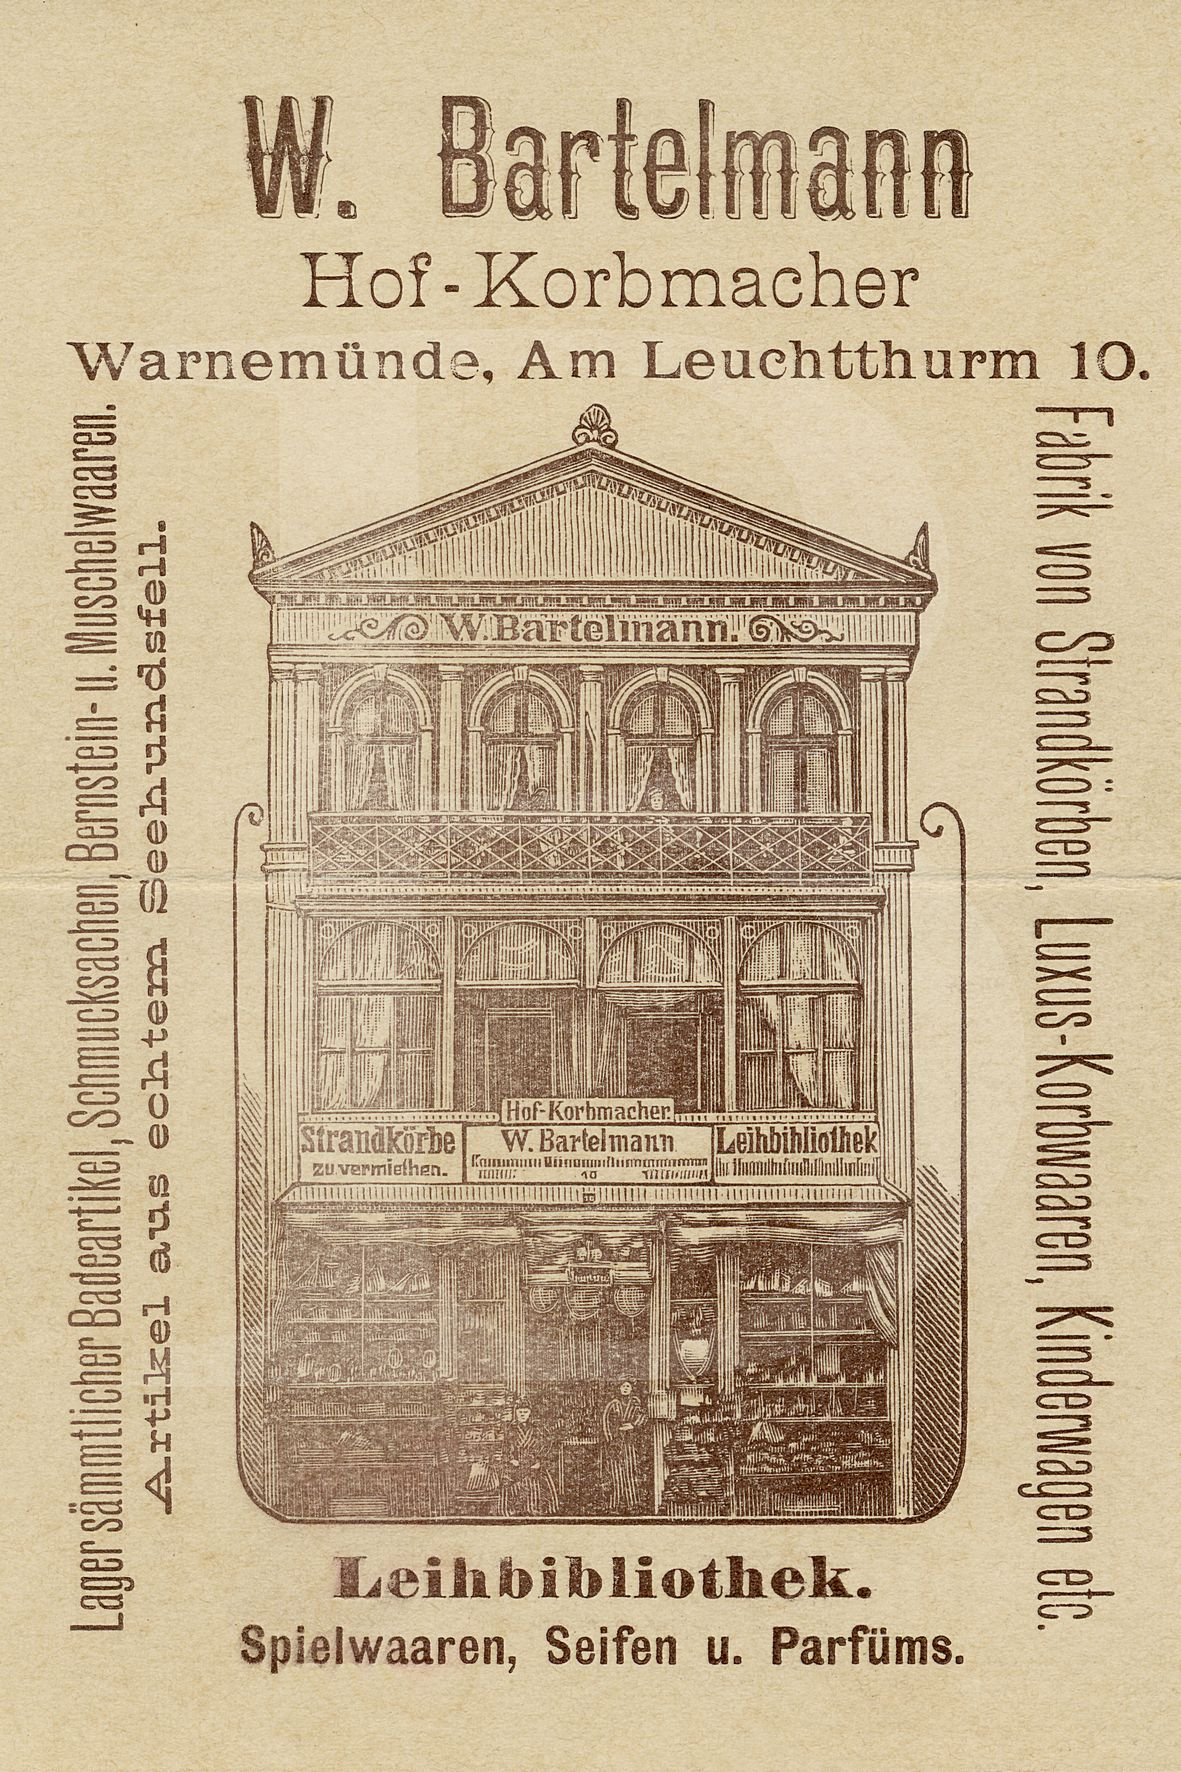 Advertisement featuring German text and a drawing of the workshop and store for Bartelmann's strandkorb business. Image courtesy of Bartelmann.com.